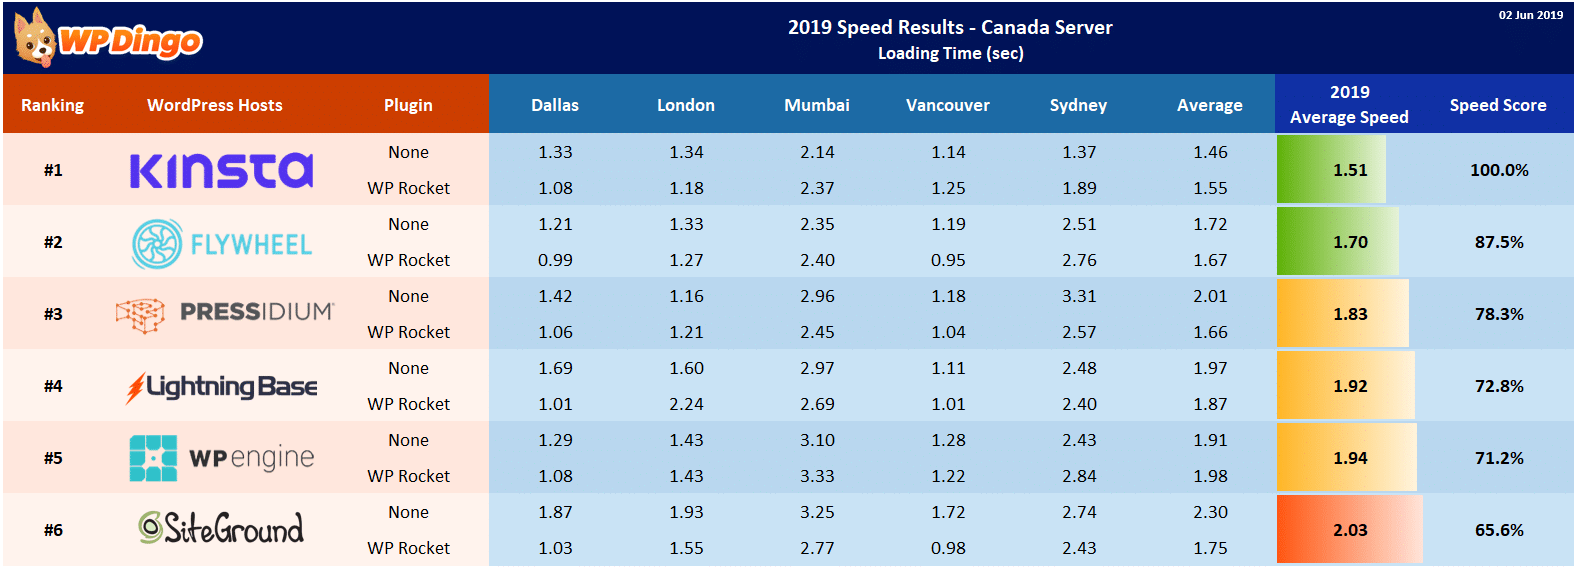 Canada Server Results - Mar 2019 to Jun 2019 - All Hosts